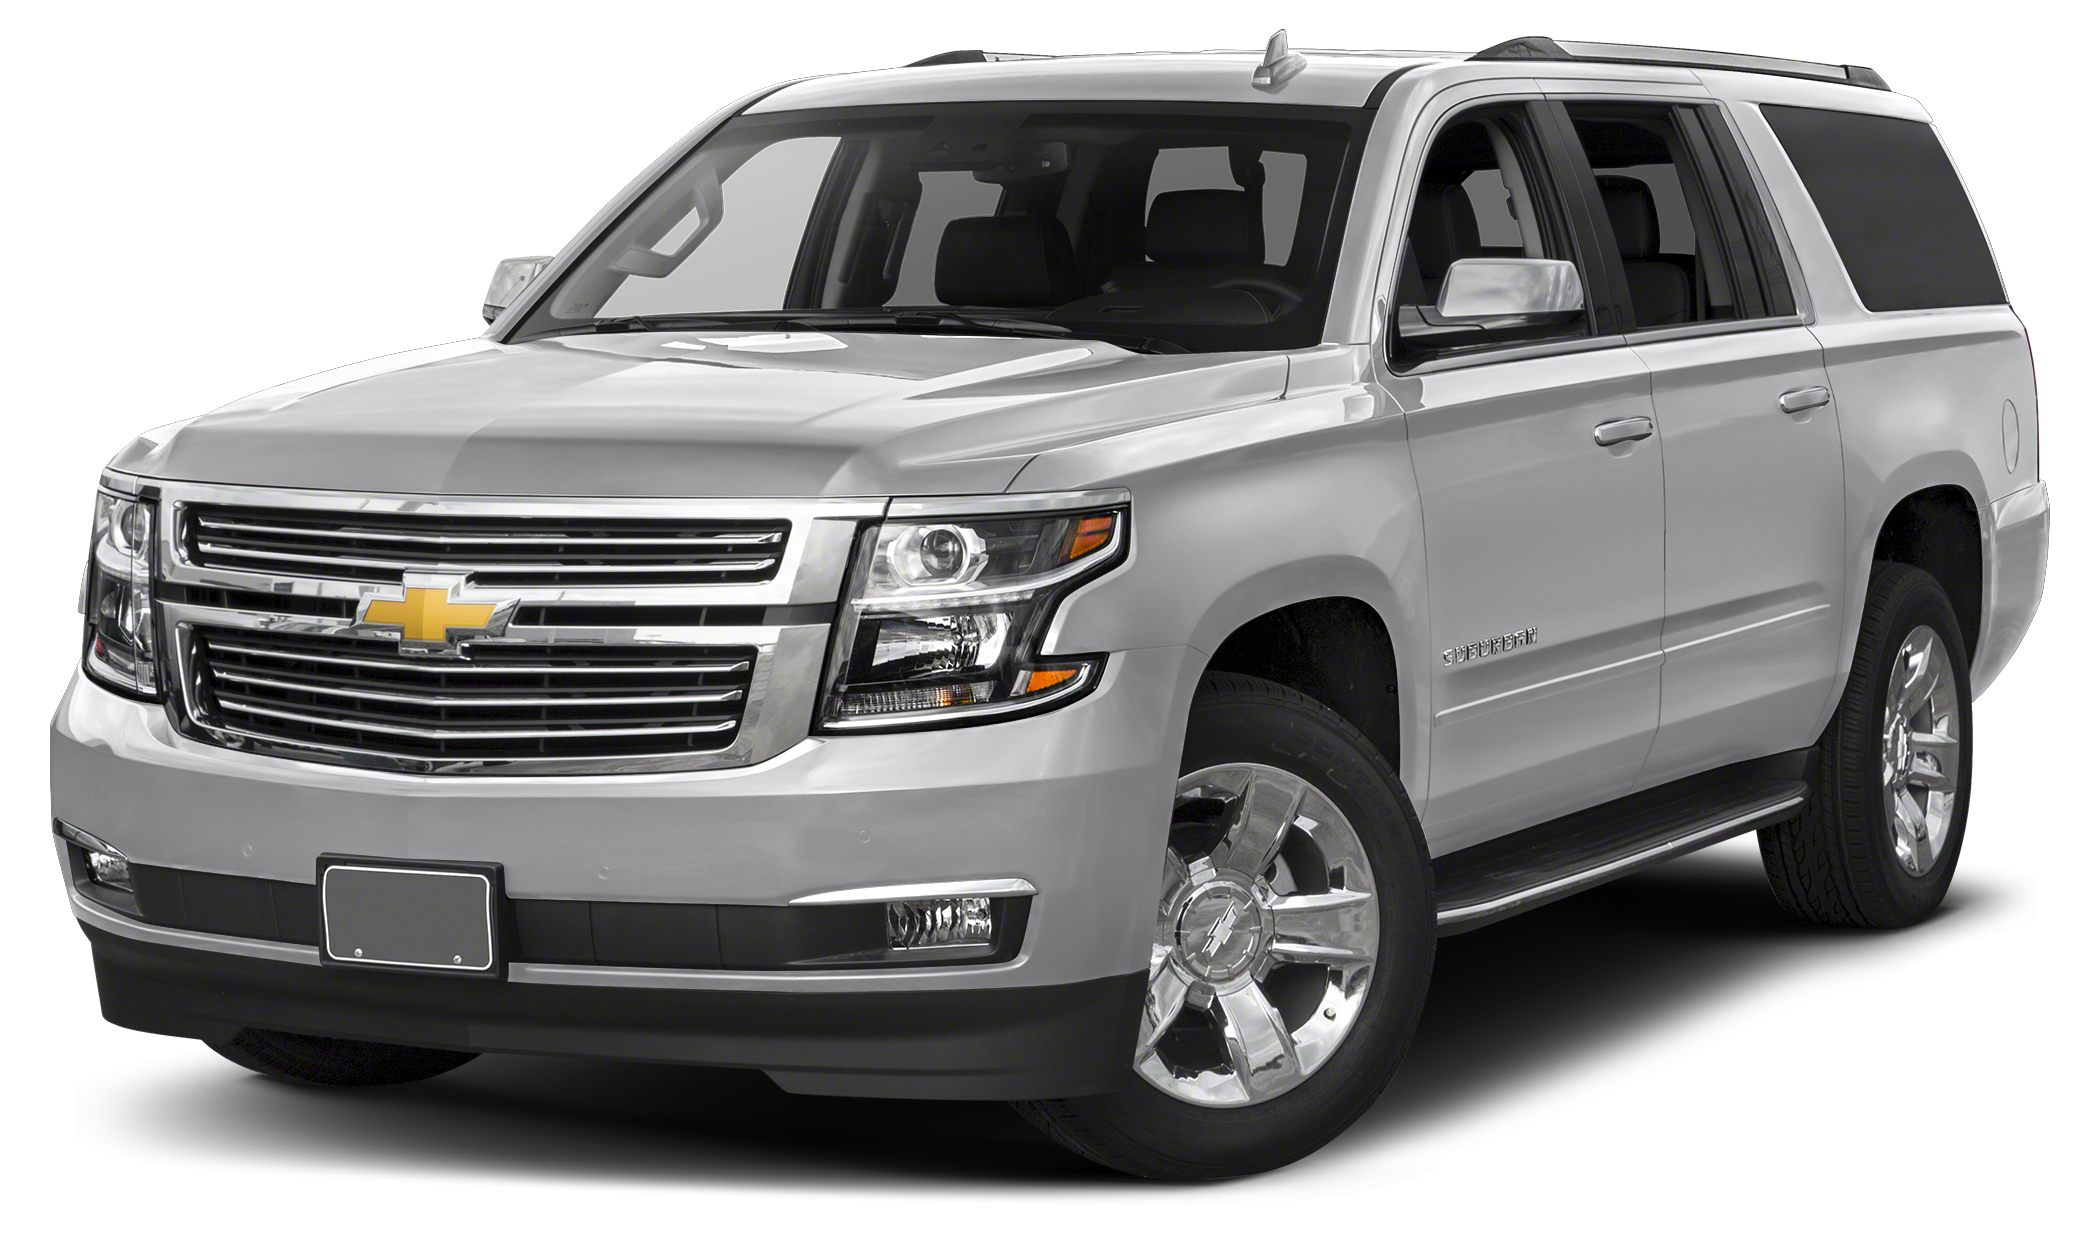 2016 Chevrolet Suburban LTZ Chevrolet Suburban 2016 LTZ CARFAX One-Owner Clean CARFAX Reviews